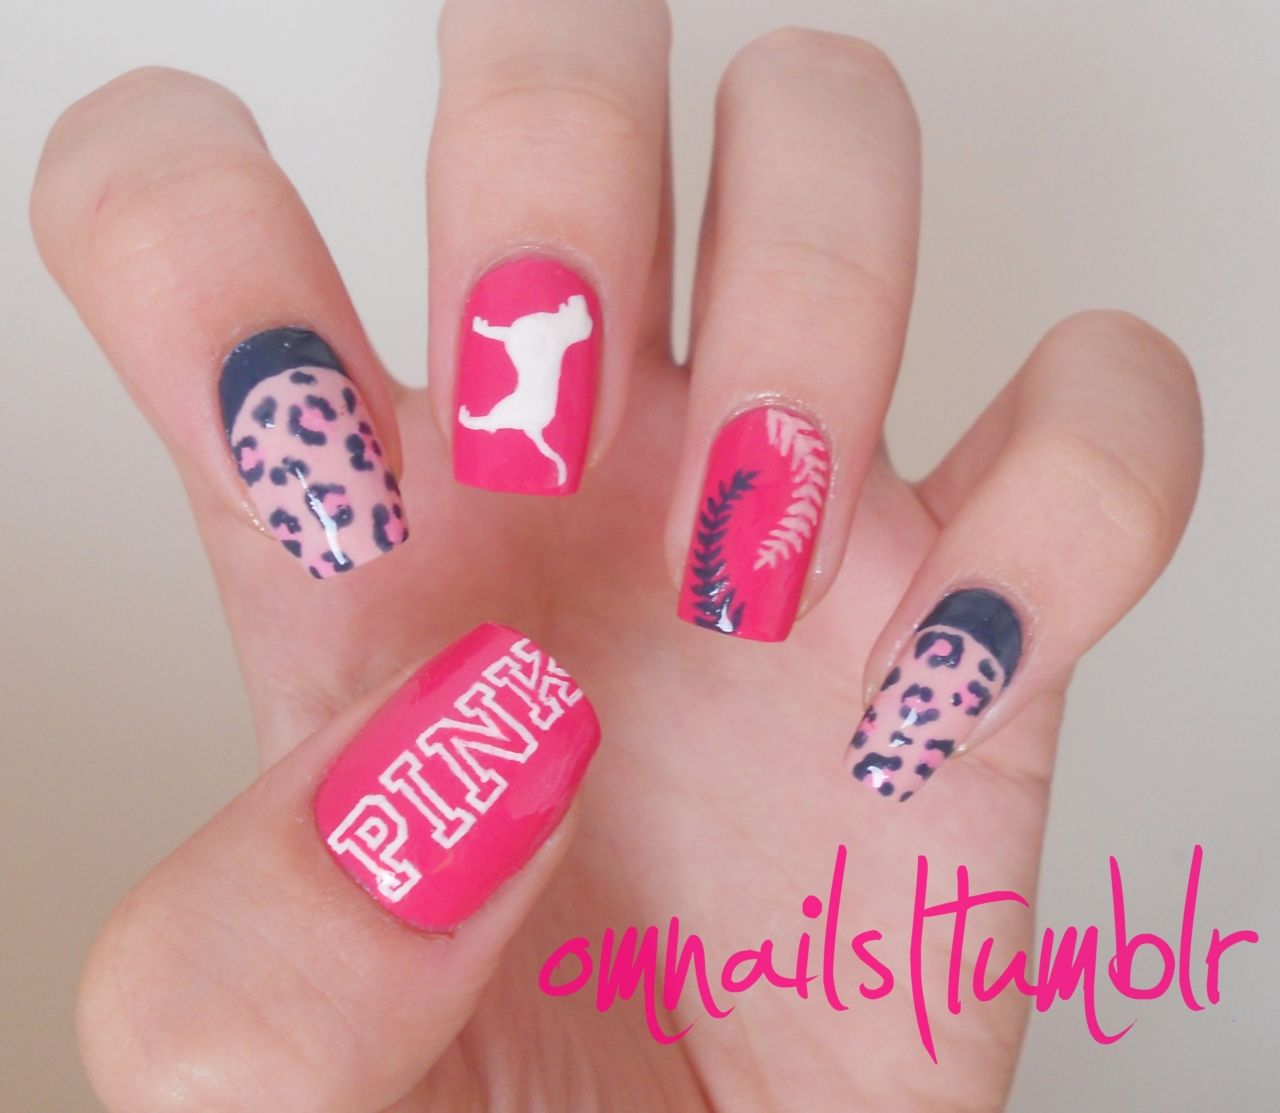 Today S Daily Nail Art Is This Victoria Secret Pink Nation Design By Omnails